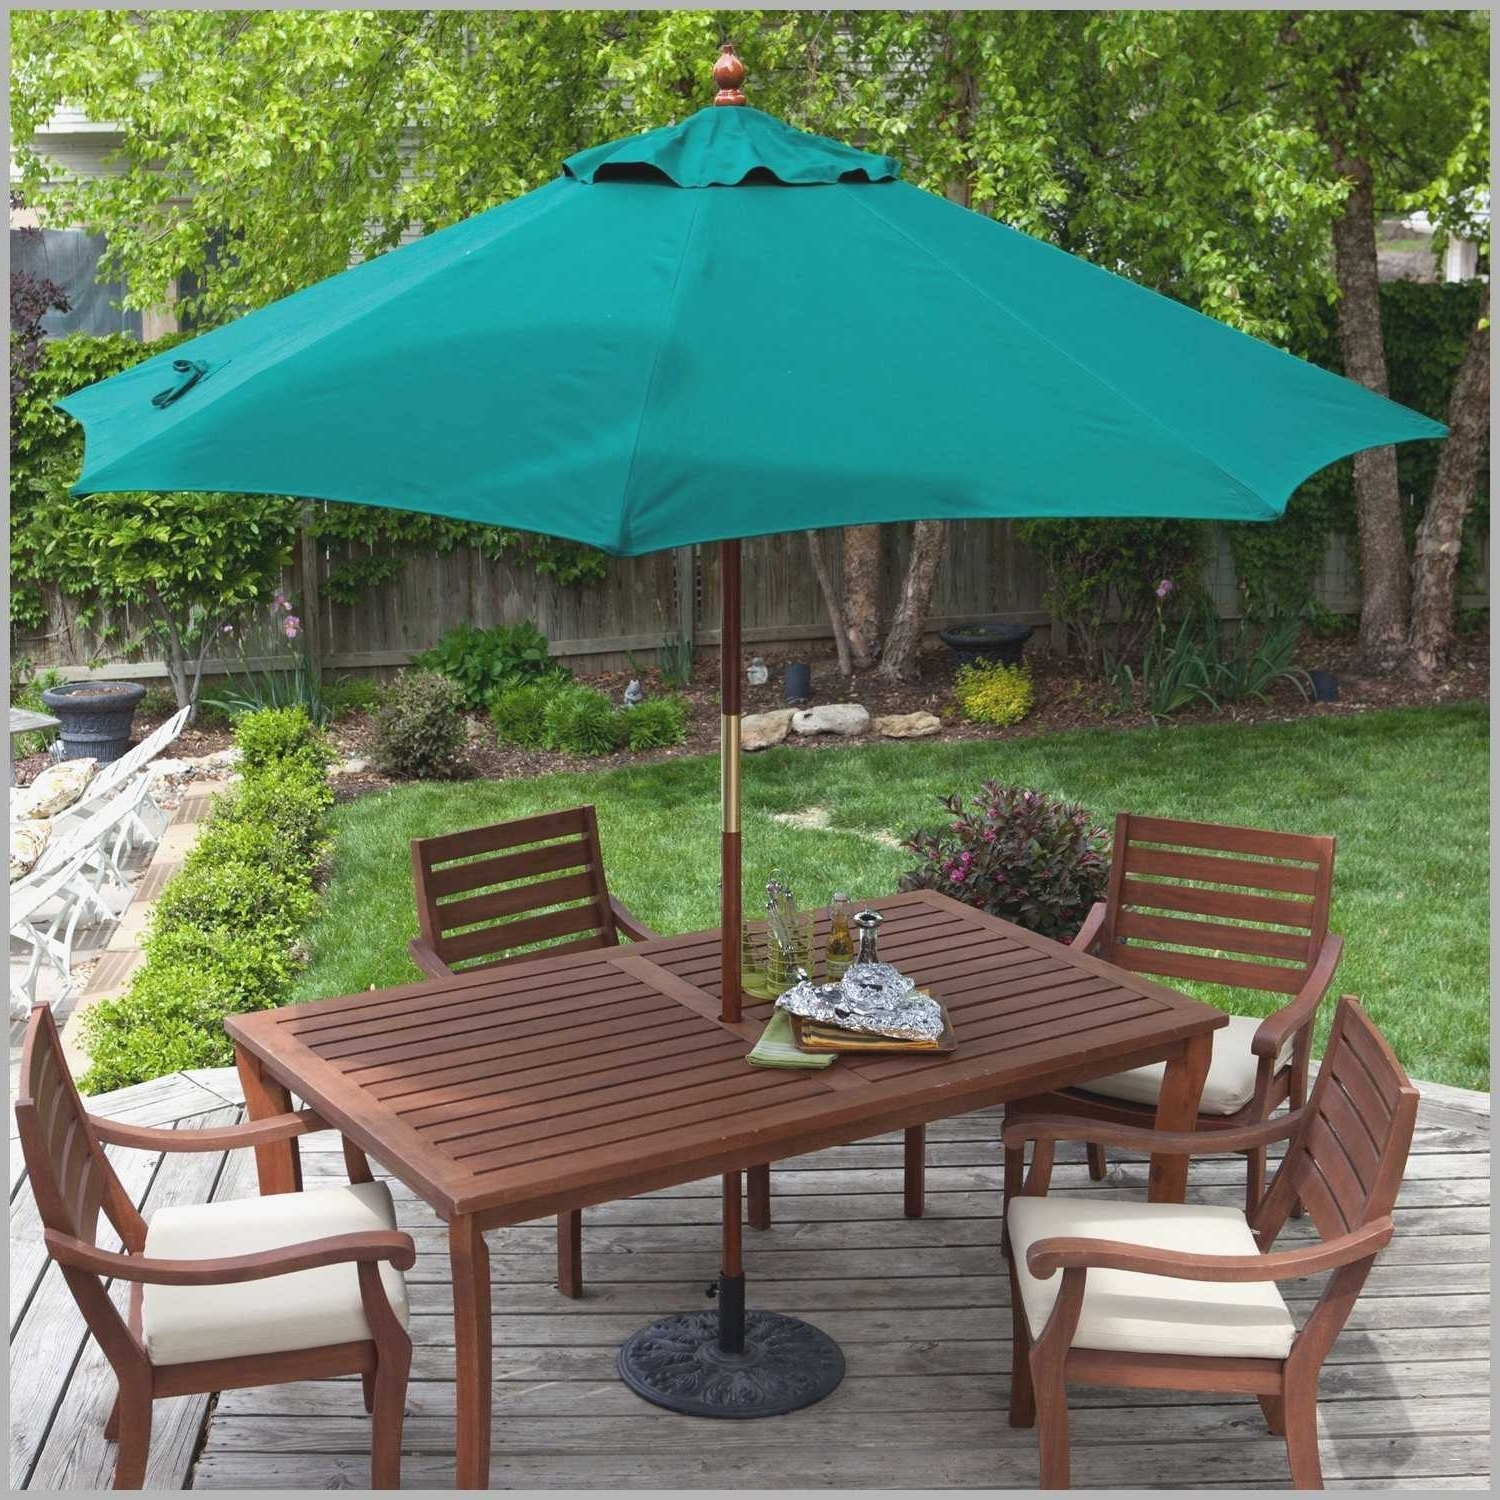 Patio Tables With Umbrella Hole Pertaining To Popular Patio Table: Patio Table Umbrella Flange Patio Table Umbrella Hole (View 10 of 20)